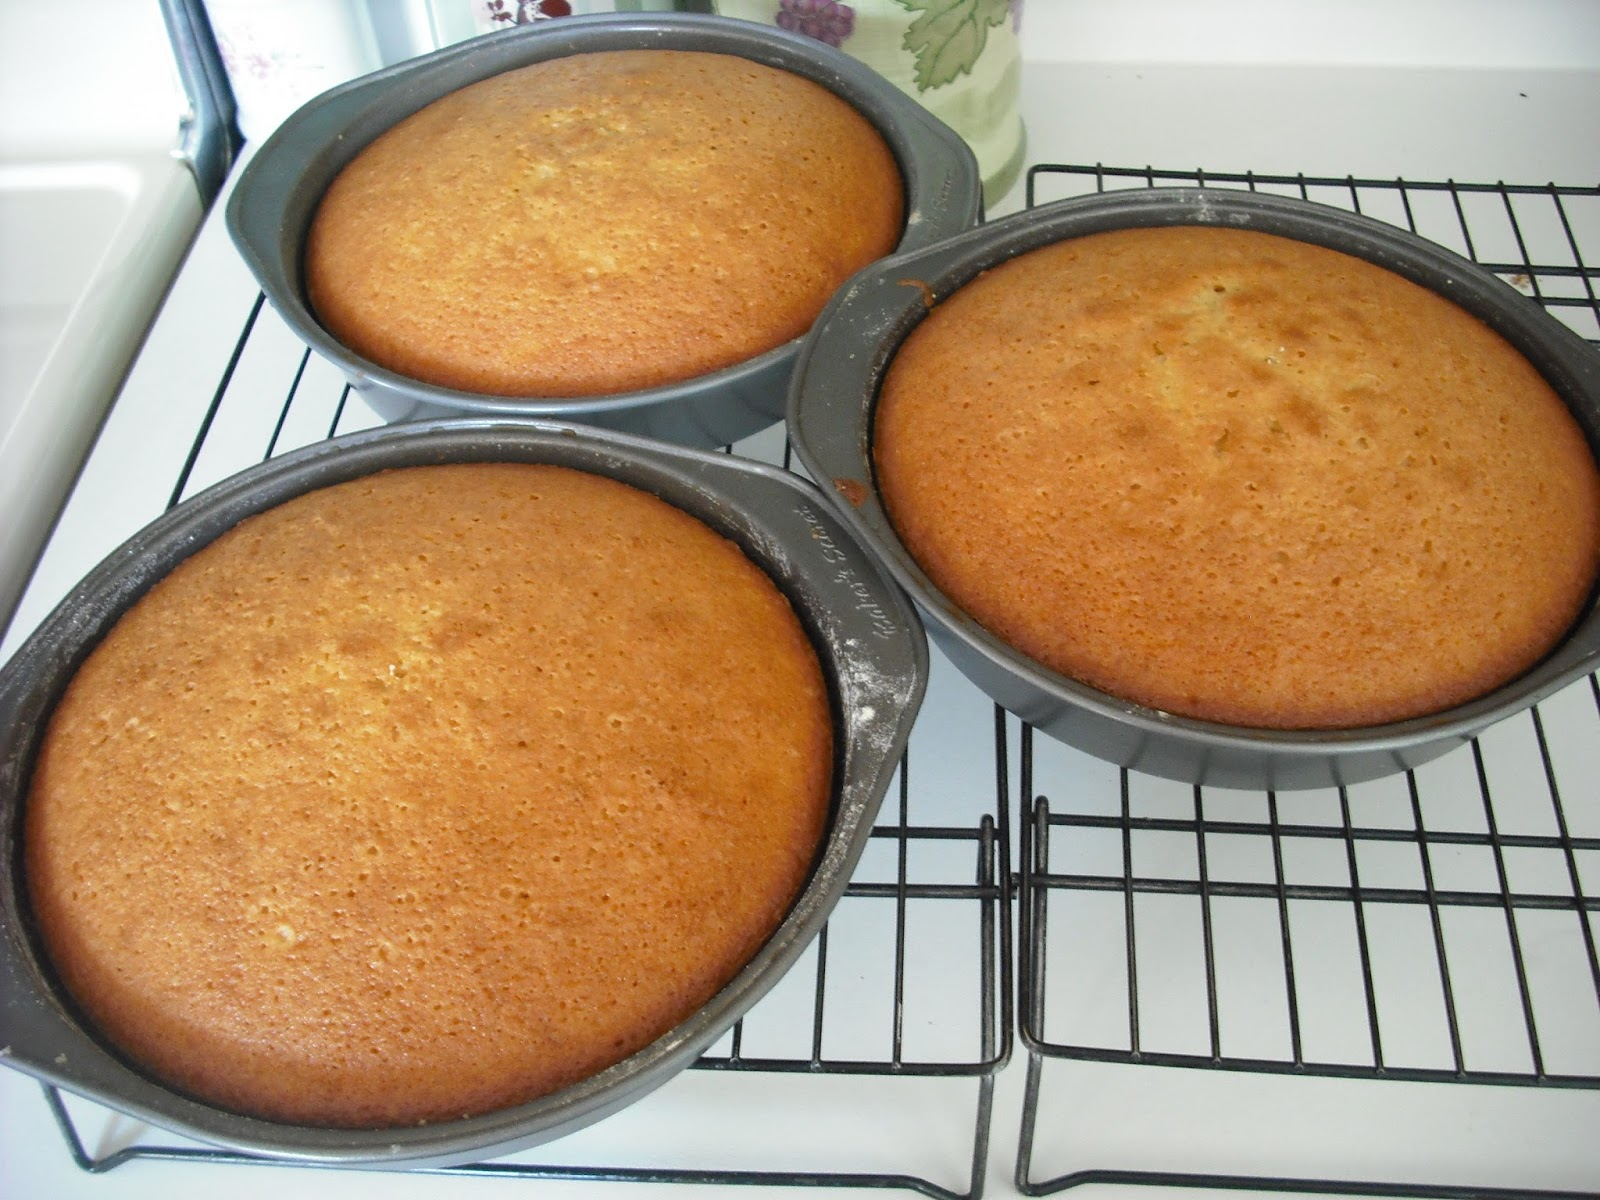 2 Tablespoons Vanilla Extract 1 Cup Sour Cream Or Yogurt Low Fat Works At Room Temperature 3 Cups Cake And Pastry Flour Sifted 3 4 Teaspoon Salt